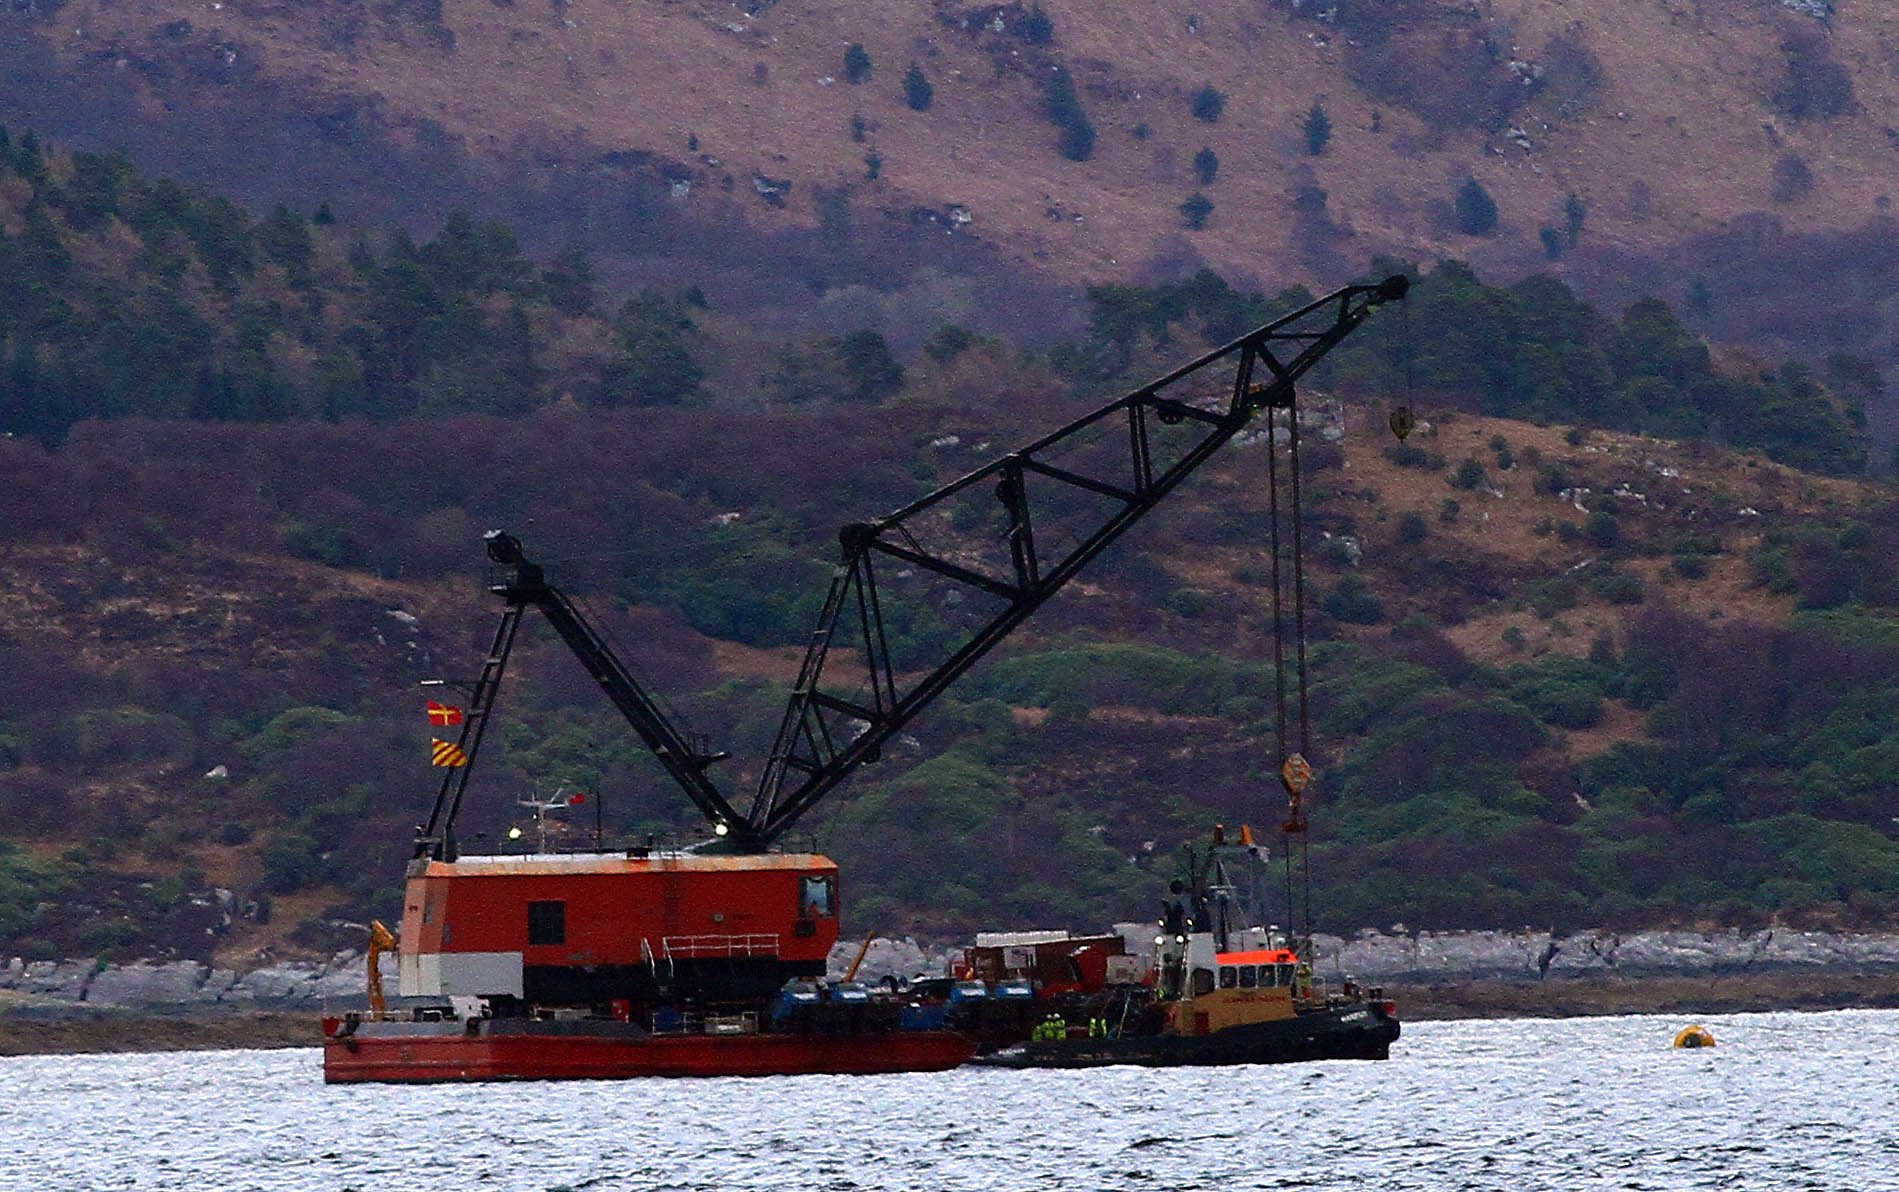 Crane in position to lift fishing vessel Nancy Glen. Picture credit: Kevin McGlynn.